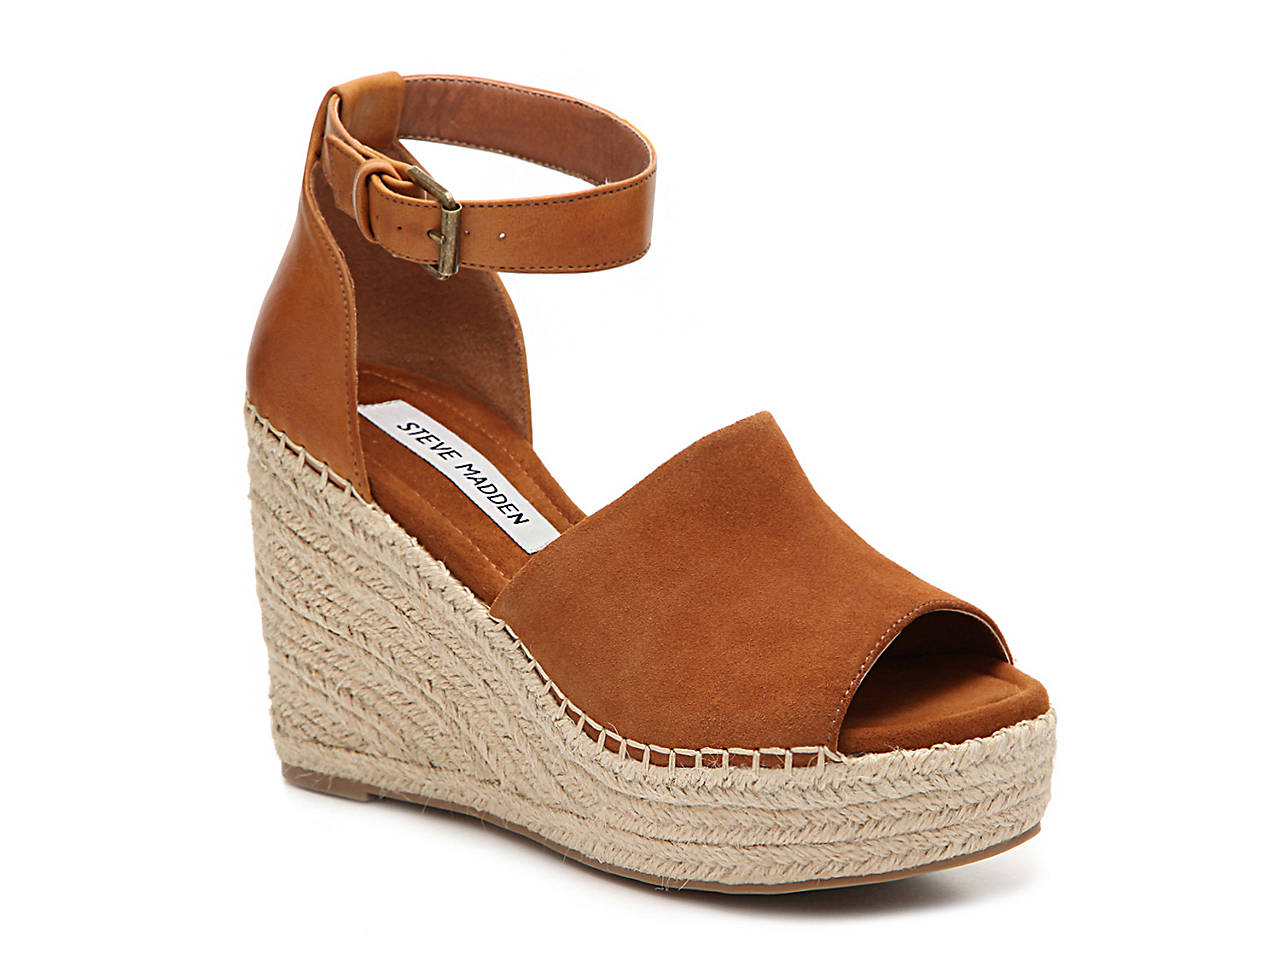 78f6969379ec Steve Madden Jaylen Wedge Sandal Women s Shoes